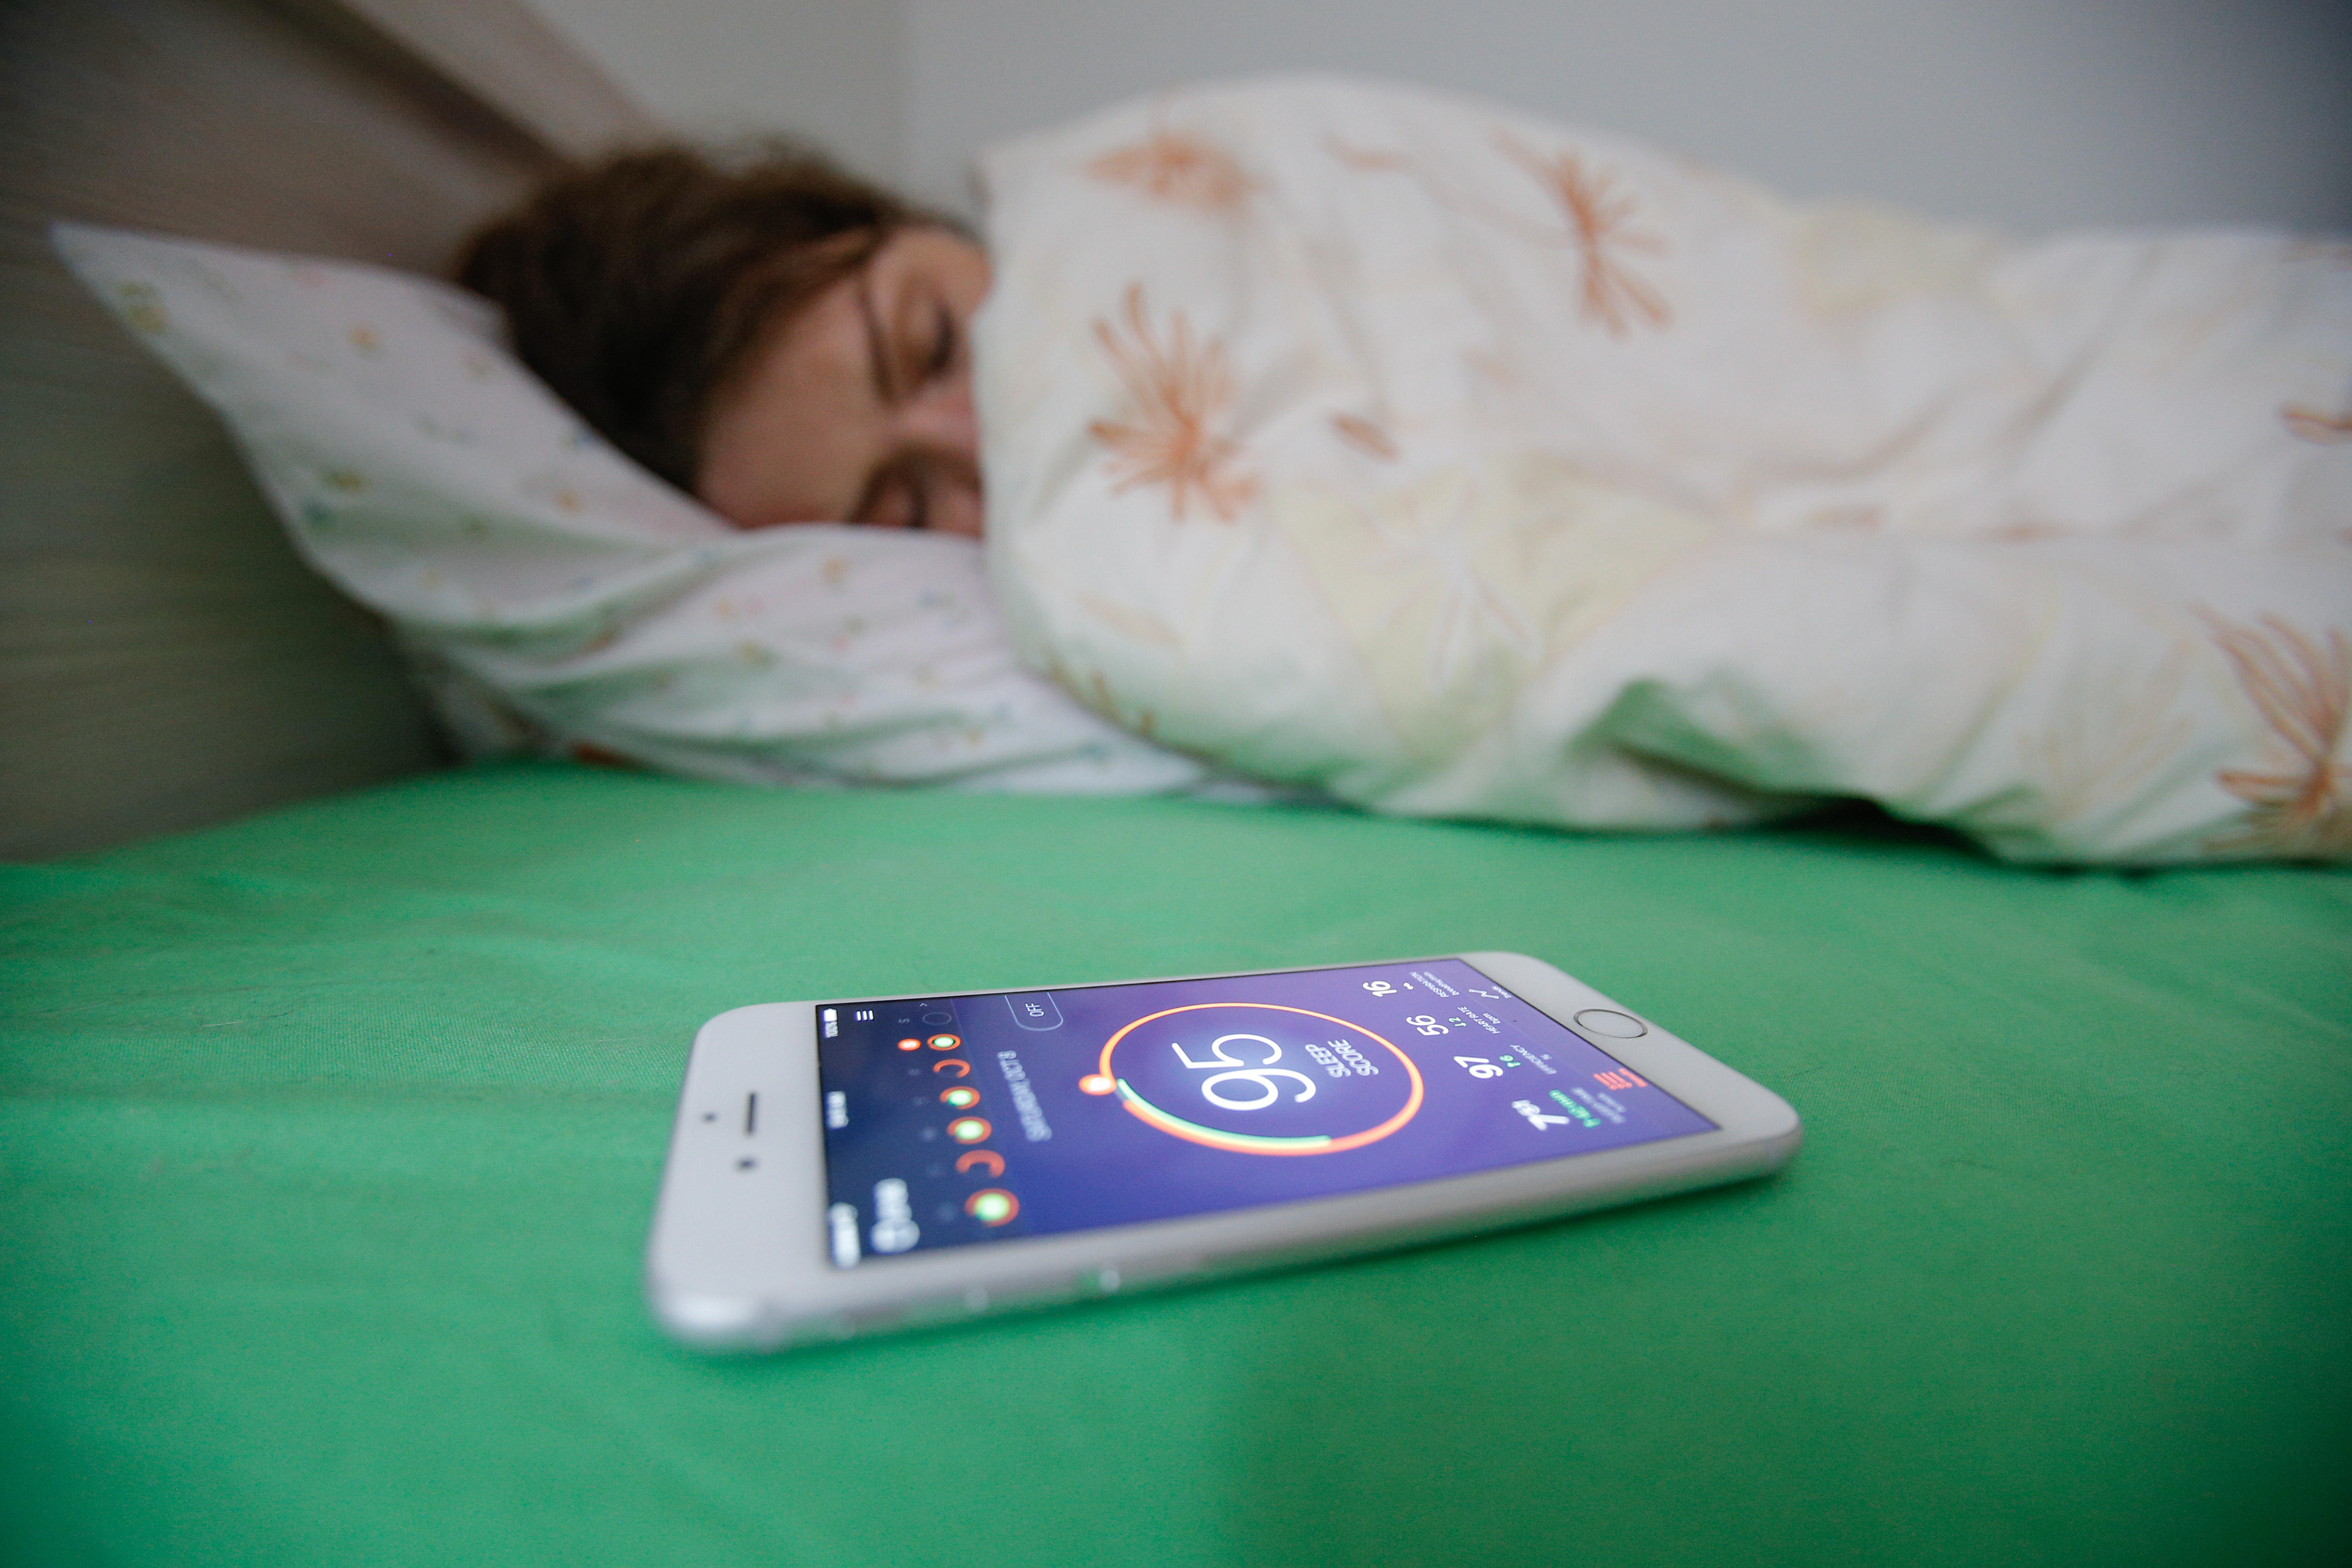 Beddit sleep tracking app bought by Apple